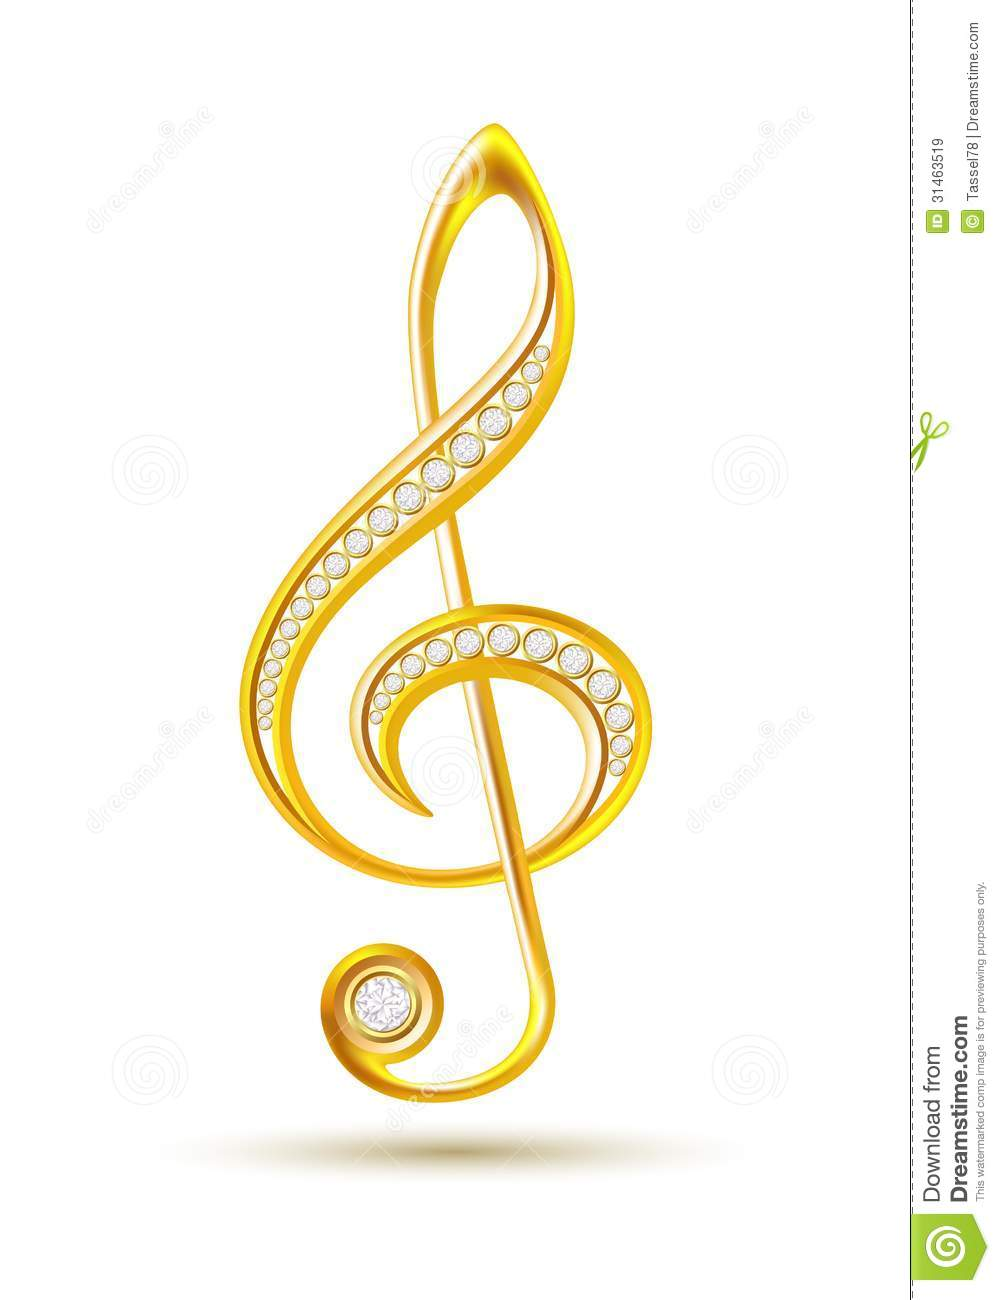 Musical notes staff background on white vector by tassel78 image - Royalty Free Stock Photo